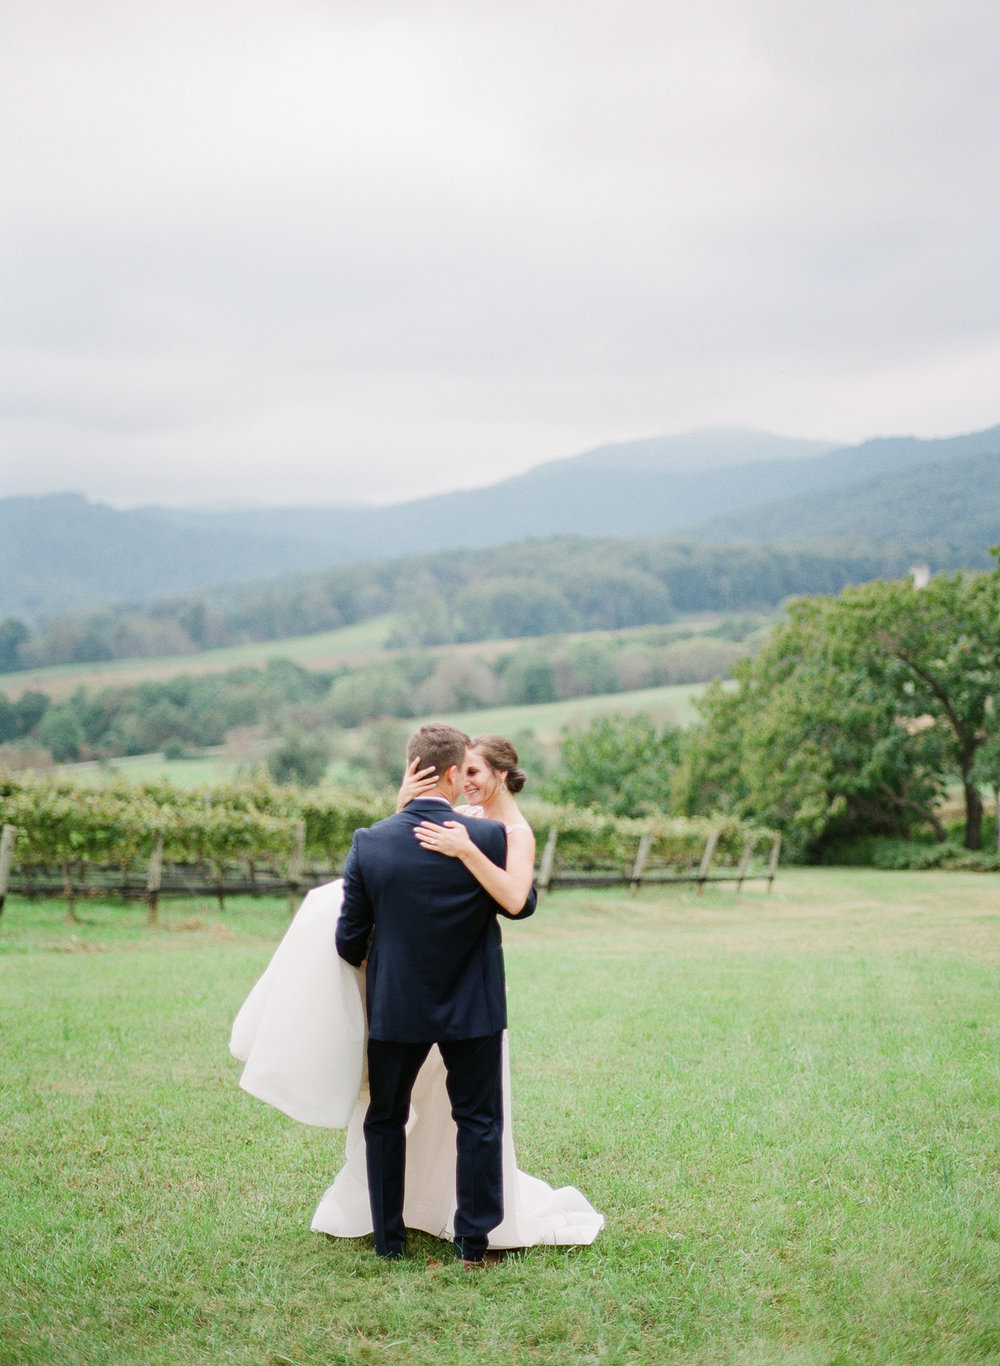 Pippin-Hill-Farm-and-Vinyards-Wedding-Film-Photography-27.jpg